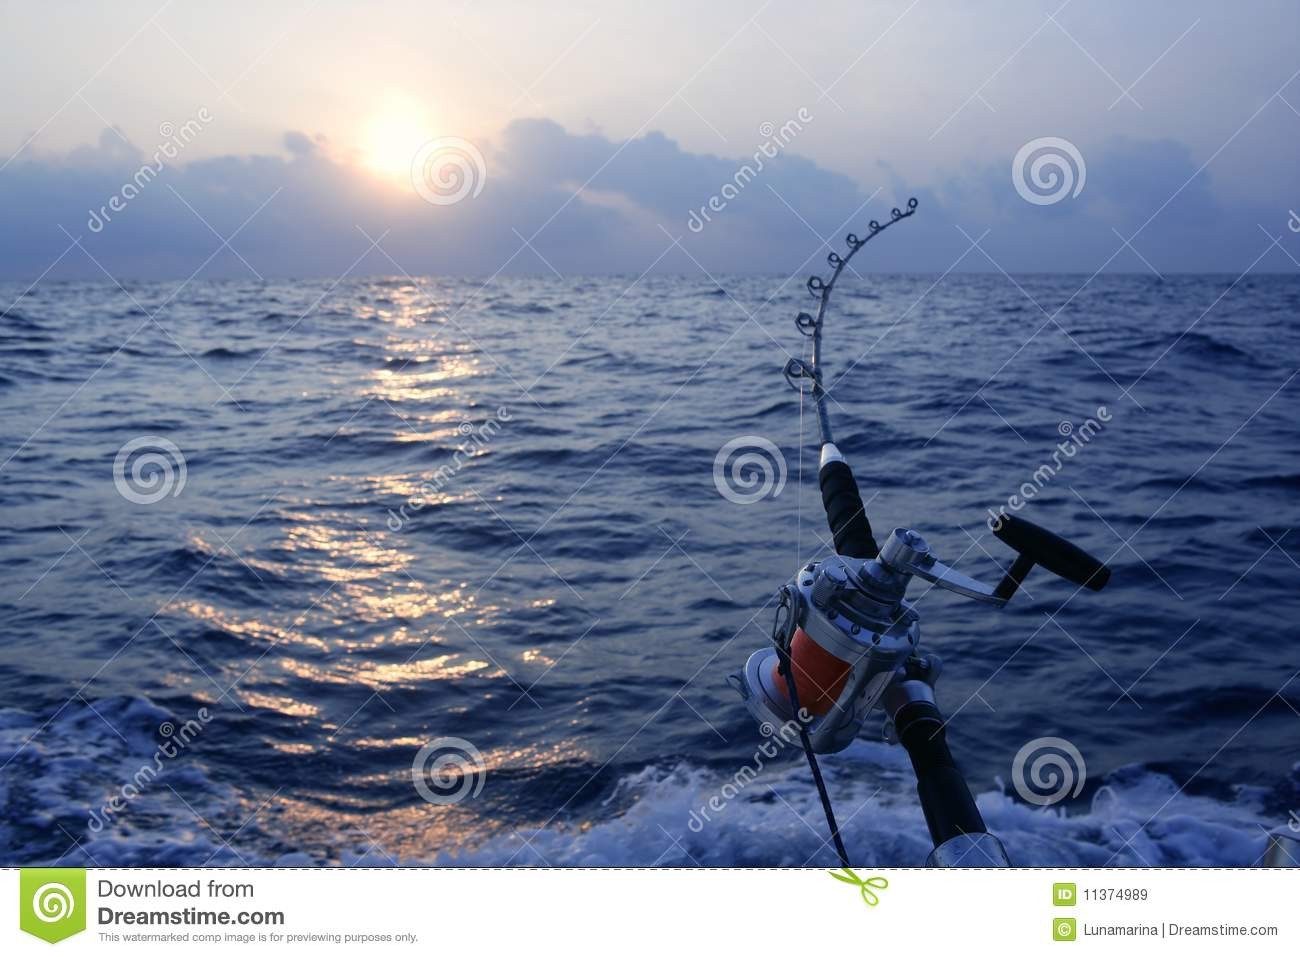 Angler Boat Big Game Fishing In Saltwater Royalty Free Stock Images - Image: 11374989